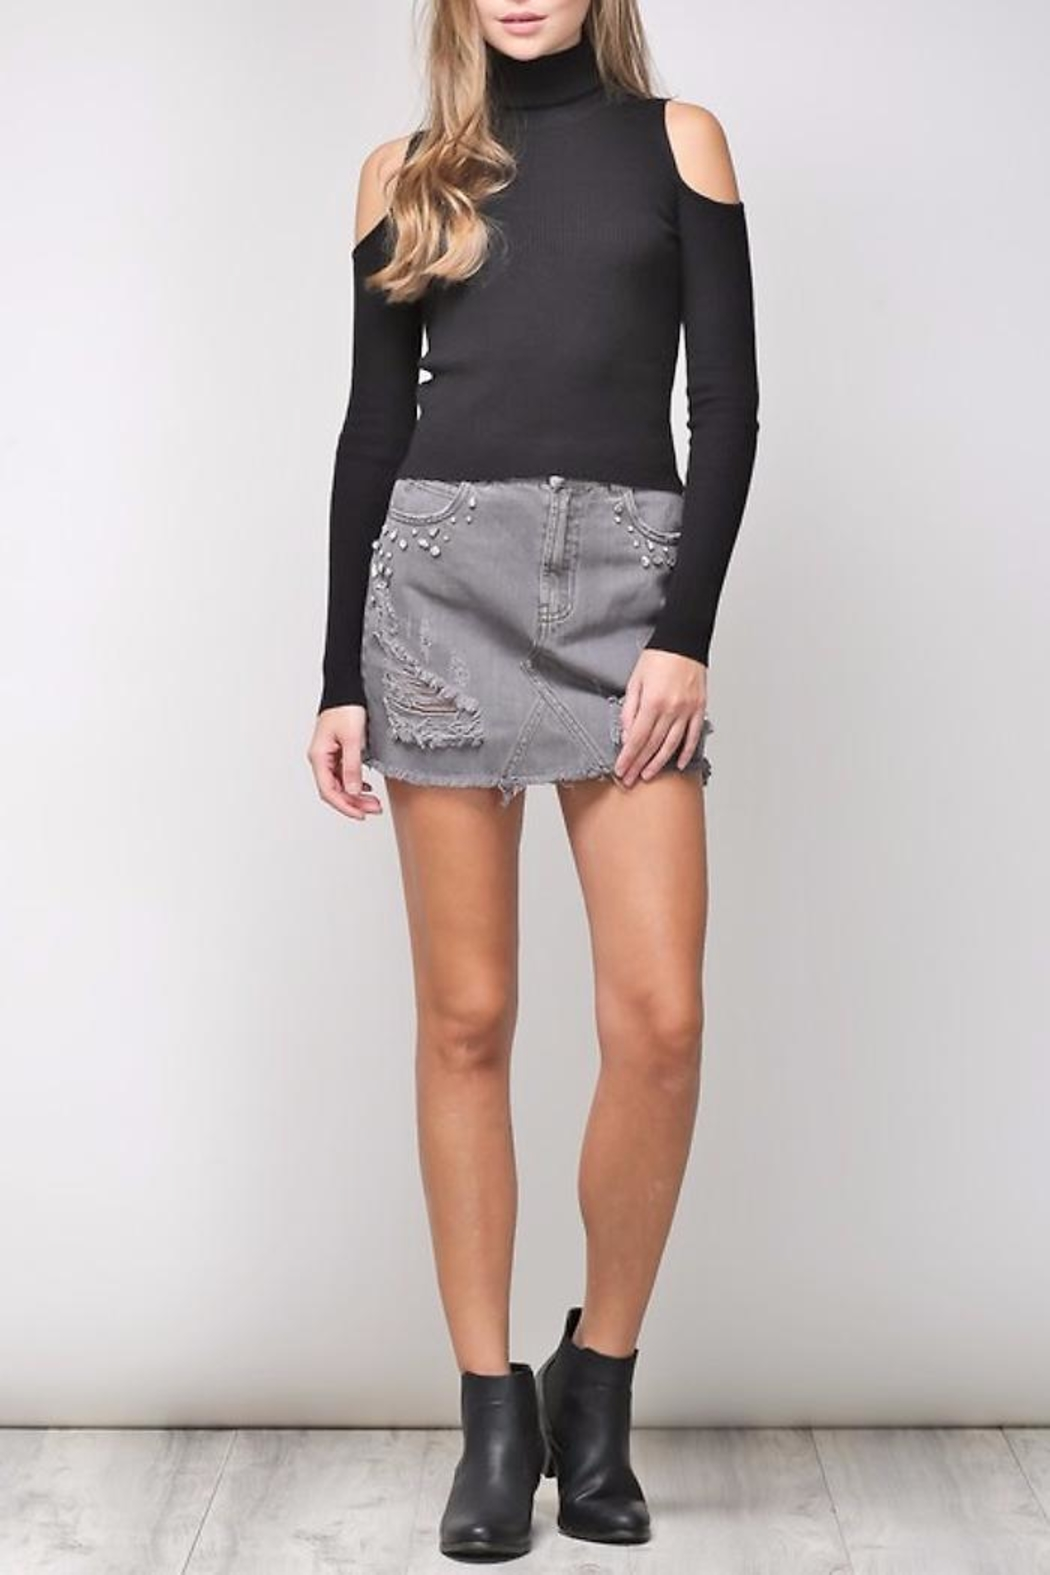 People Outfitter Mia Knit Top - Back Cropped Image